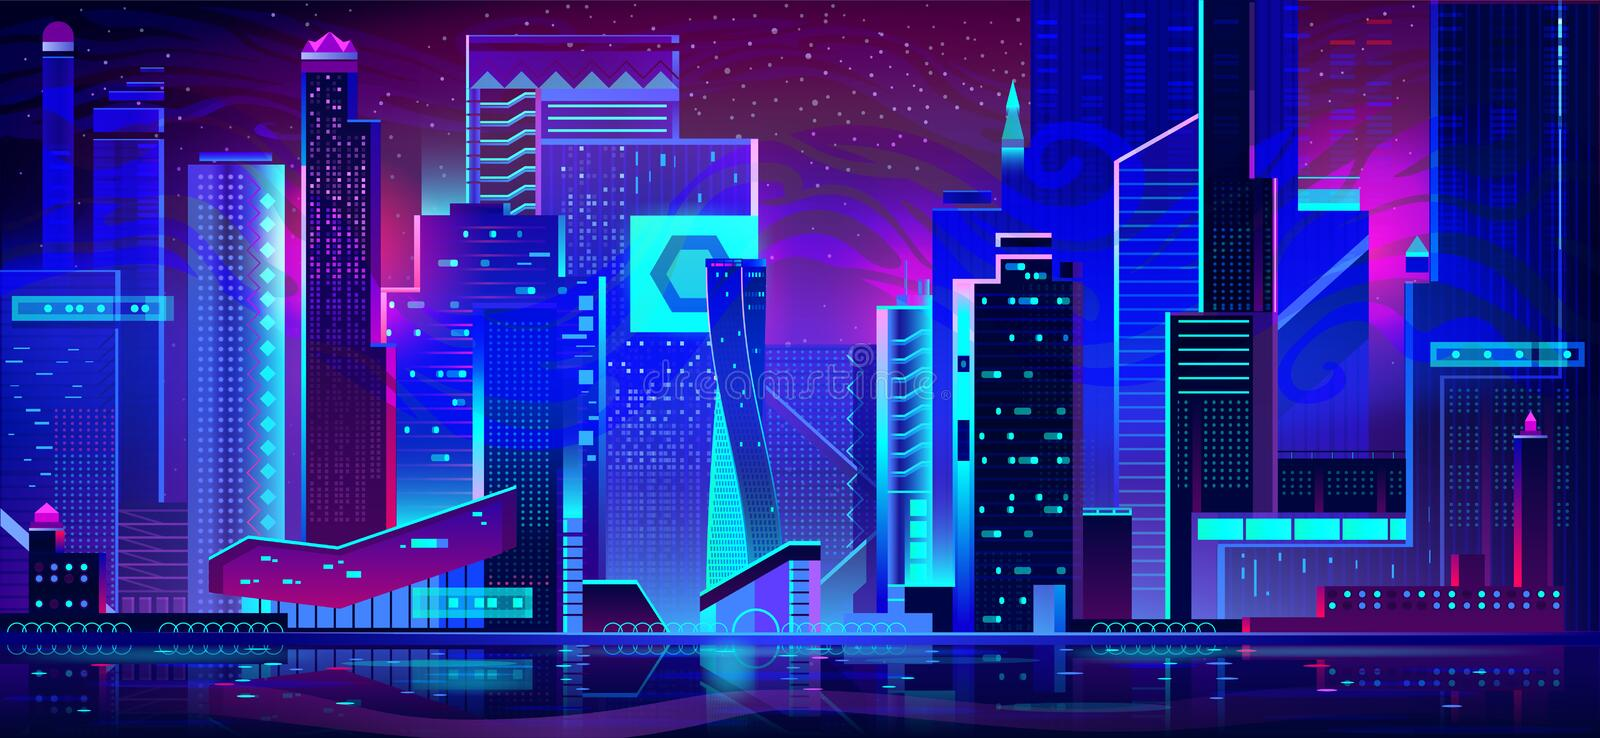 Night city in neon lights. Futuristic architecture vector illustration